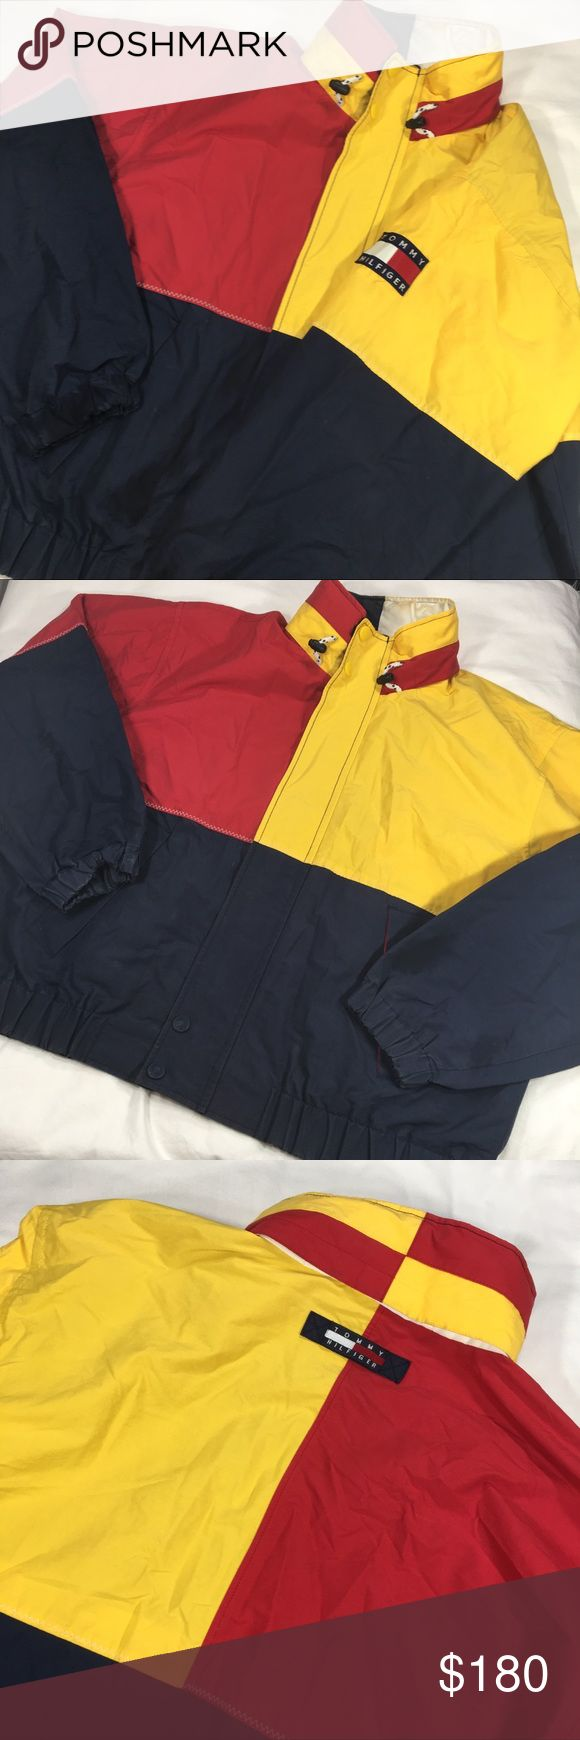 Tommy Hilfiger VTG 90s Colorblock Yacht Jacket Gently worn. No flaws. Hidden hood. Easily roll and unroll hood. Tommy Hilfiger Jackets & Coats